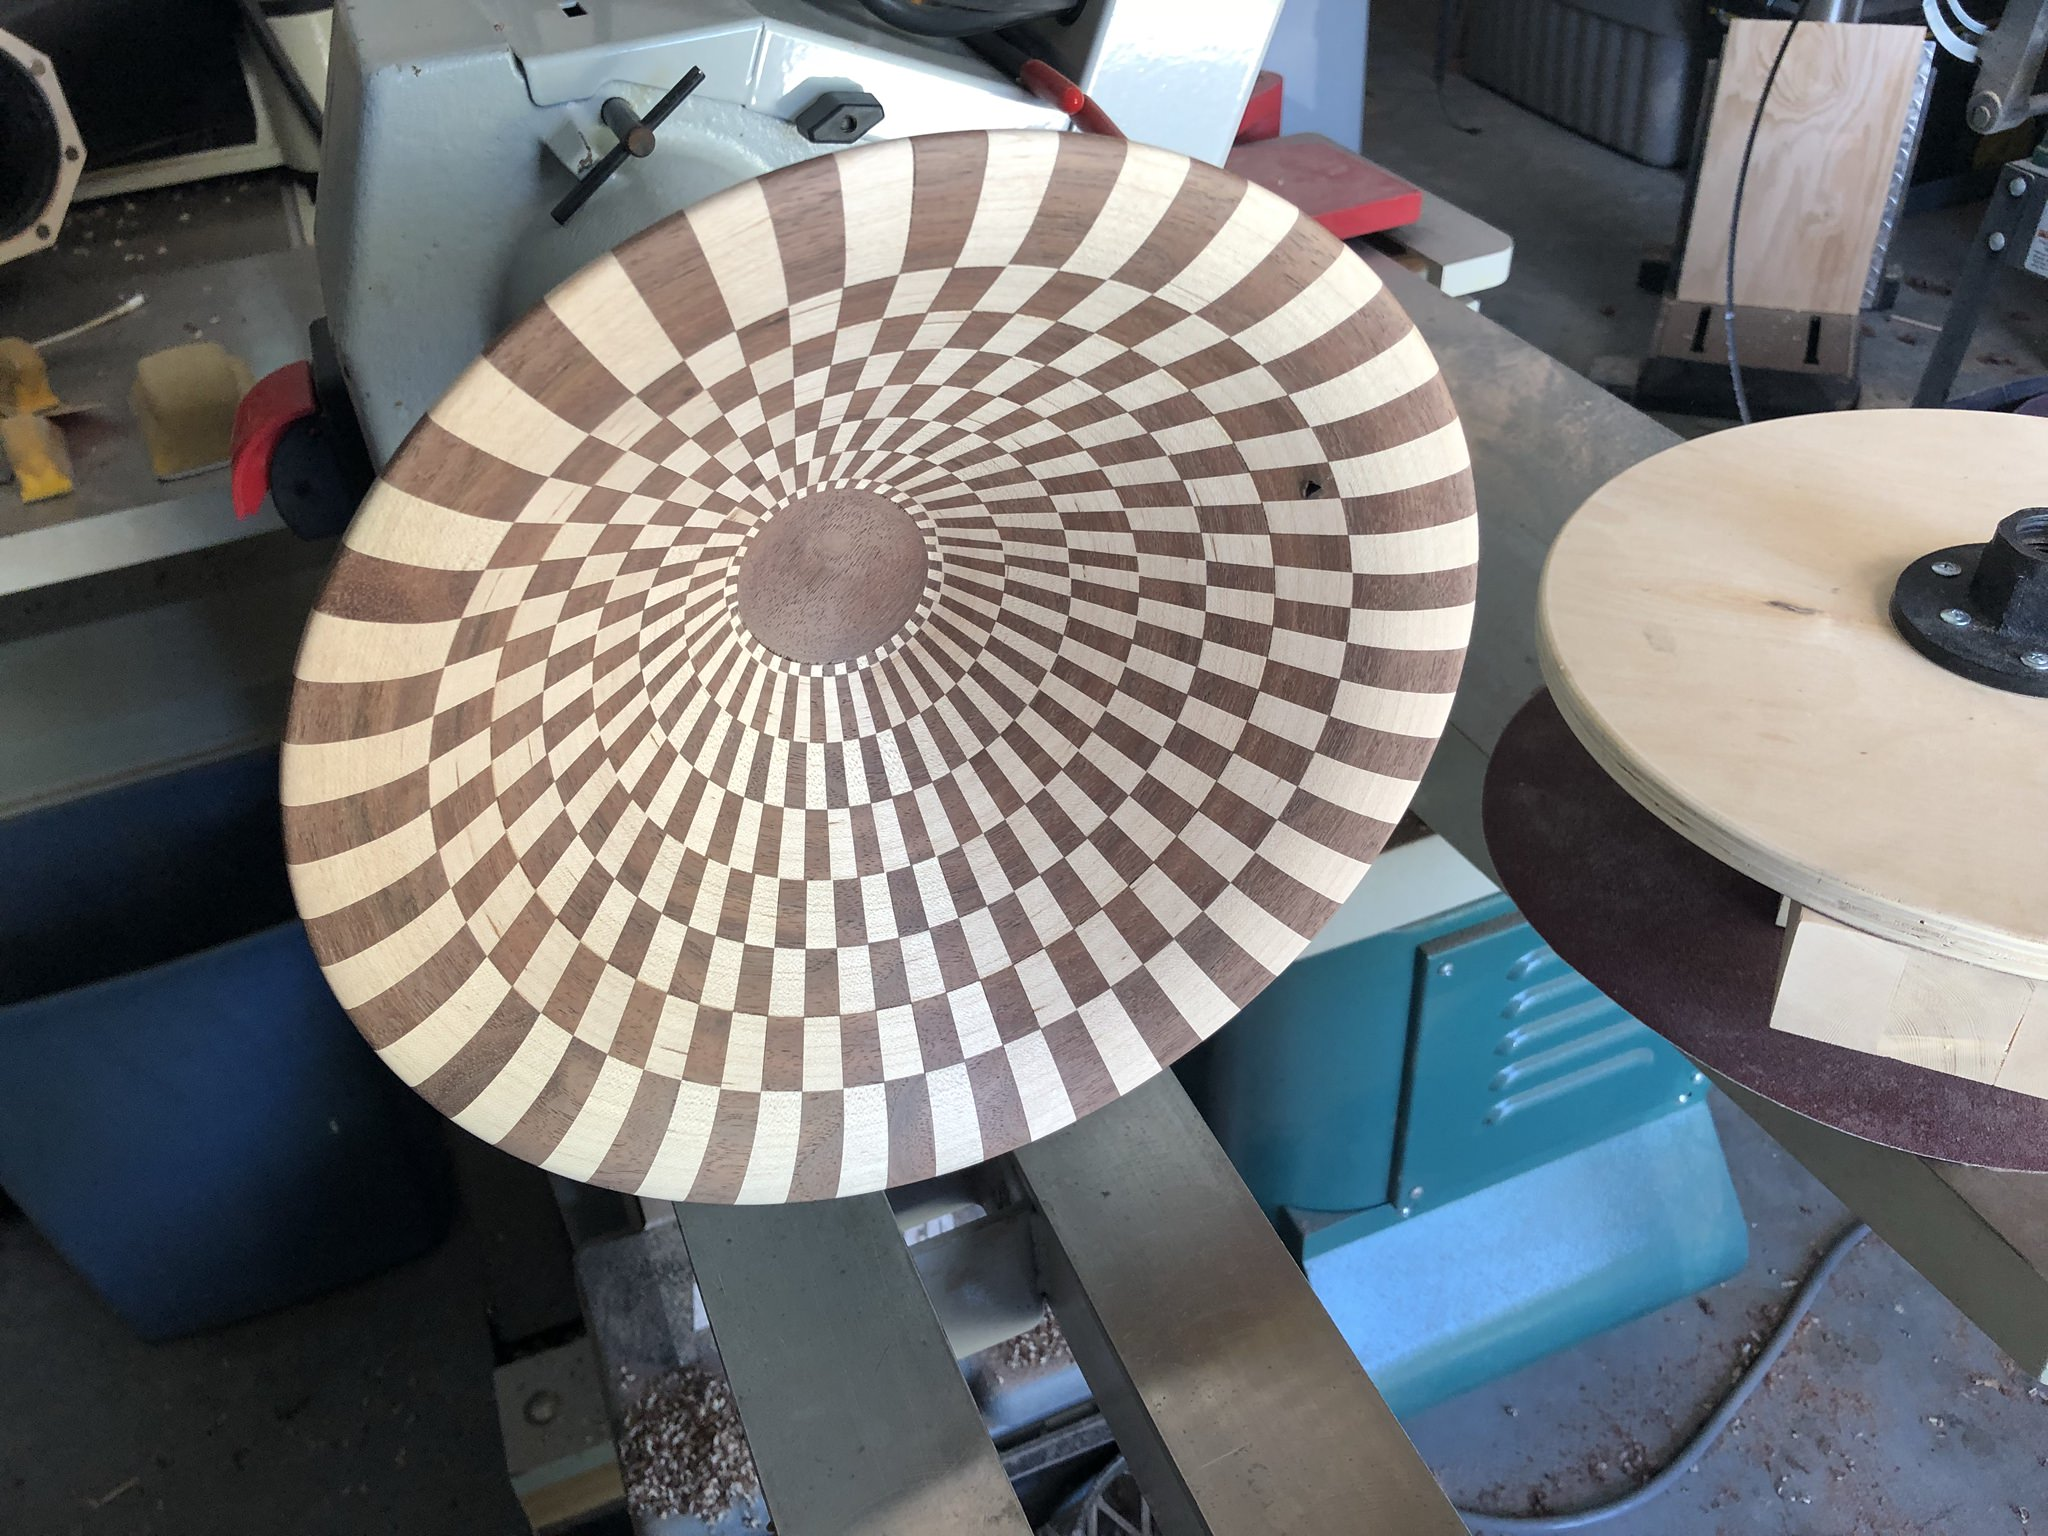 Picture of Final Shaping, Sanding and Finishing